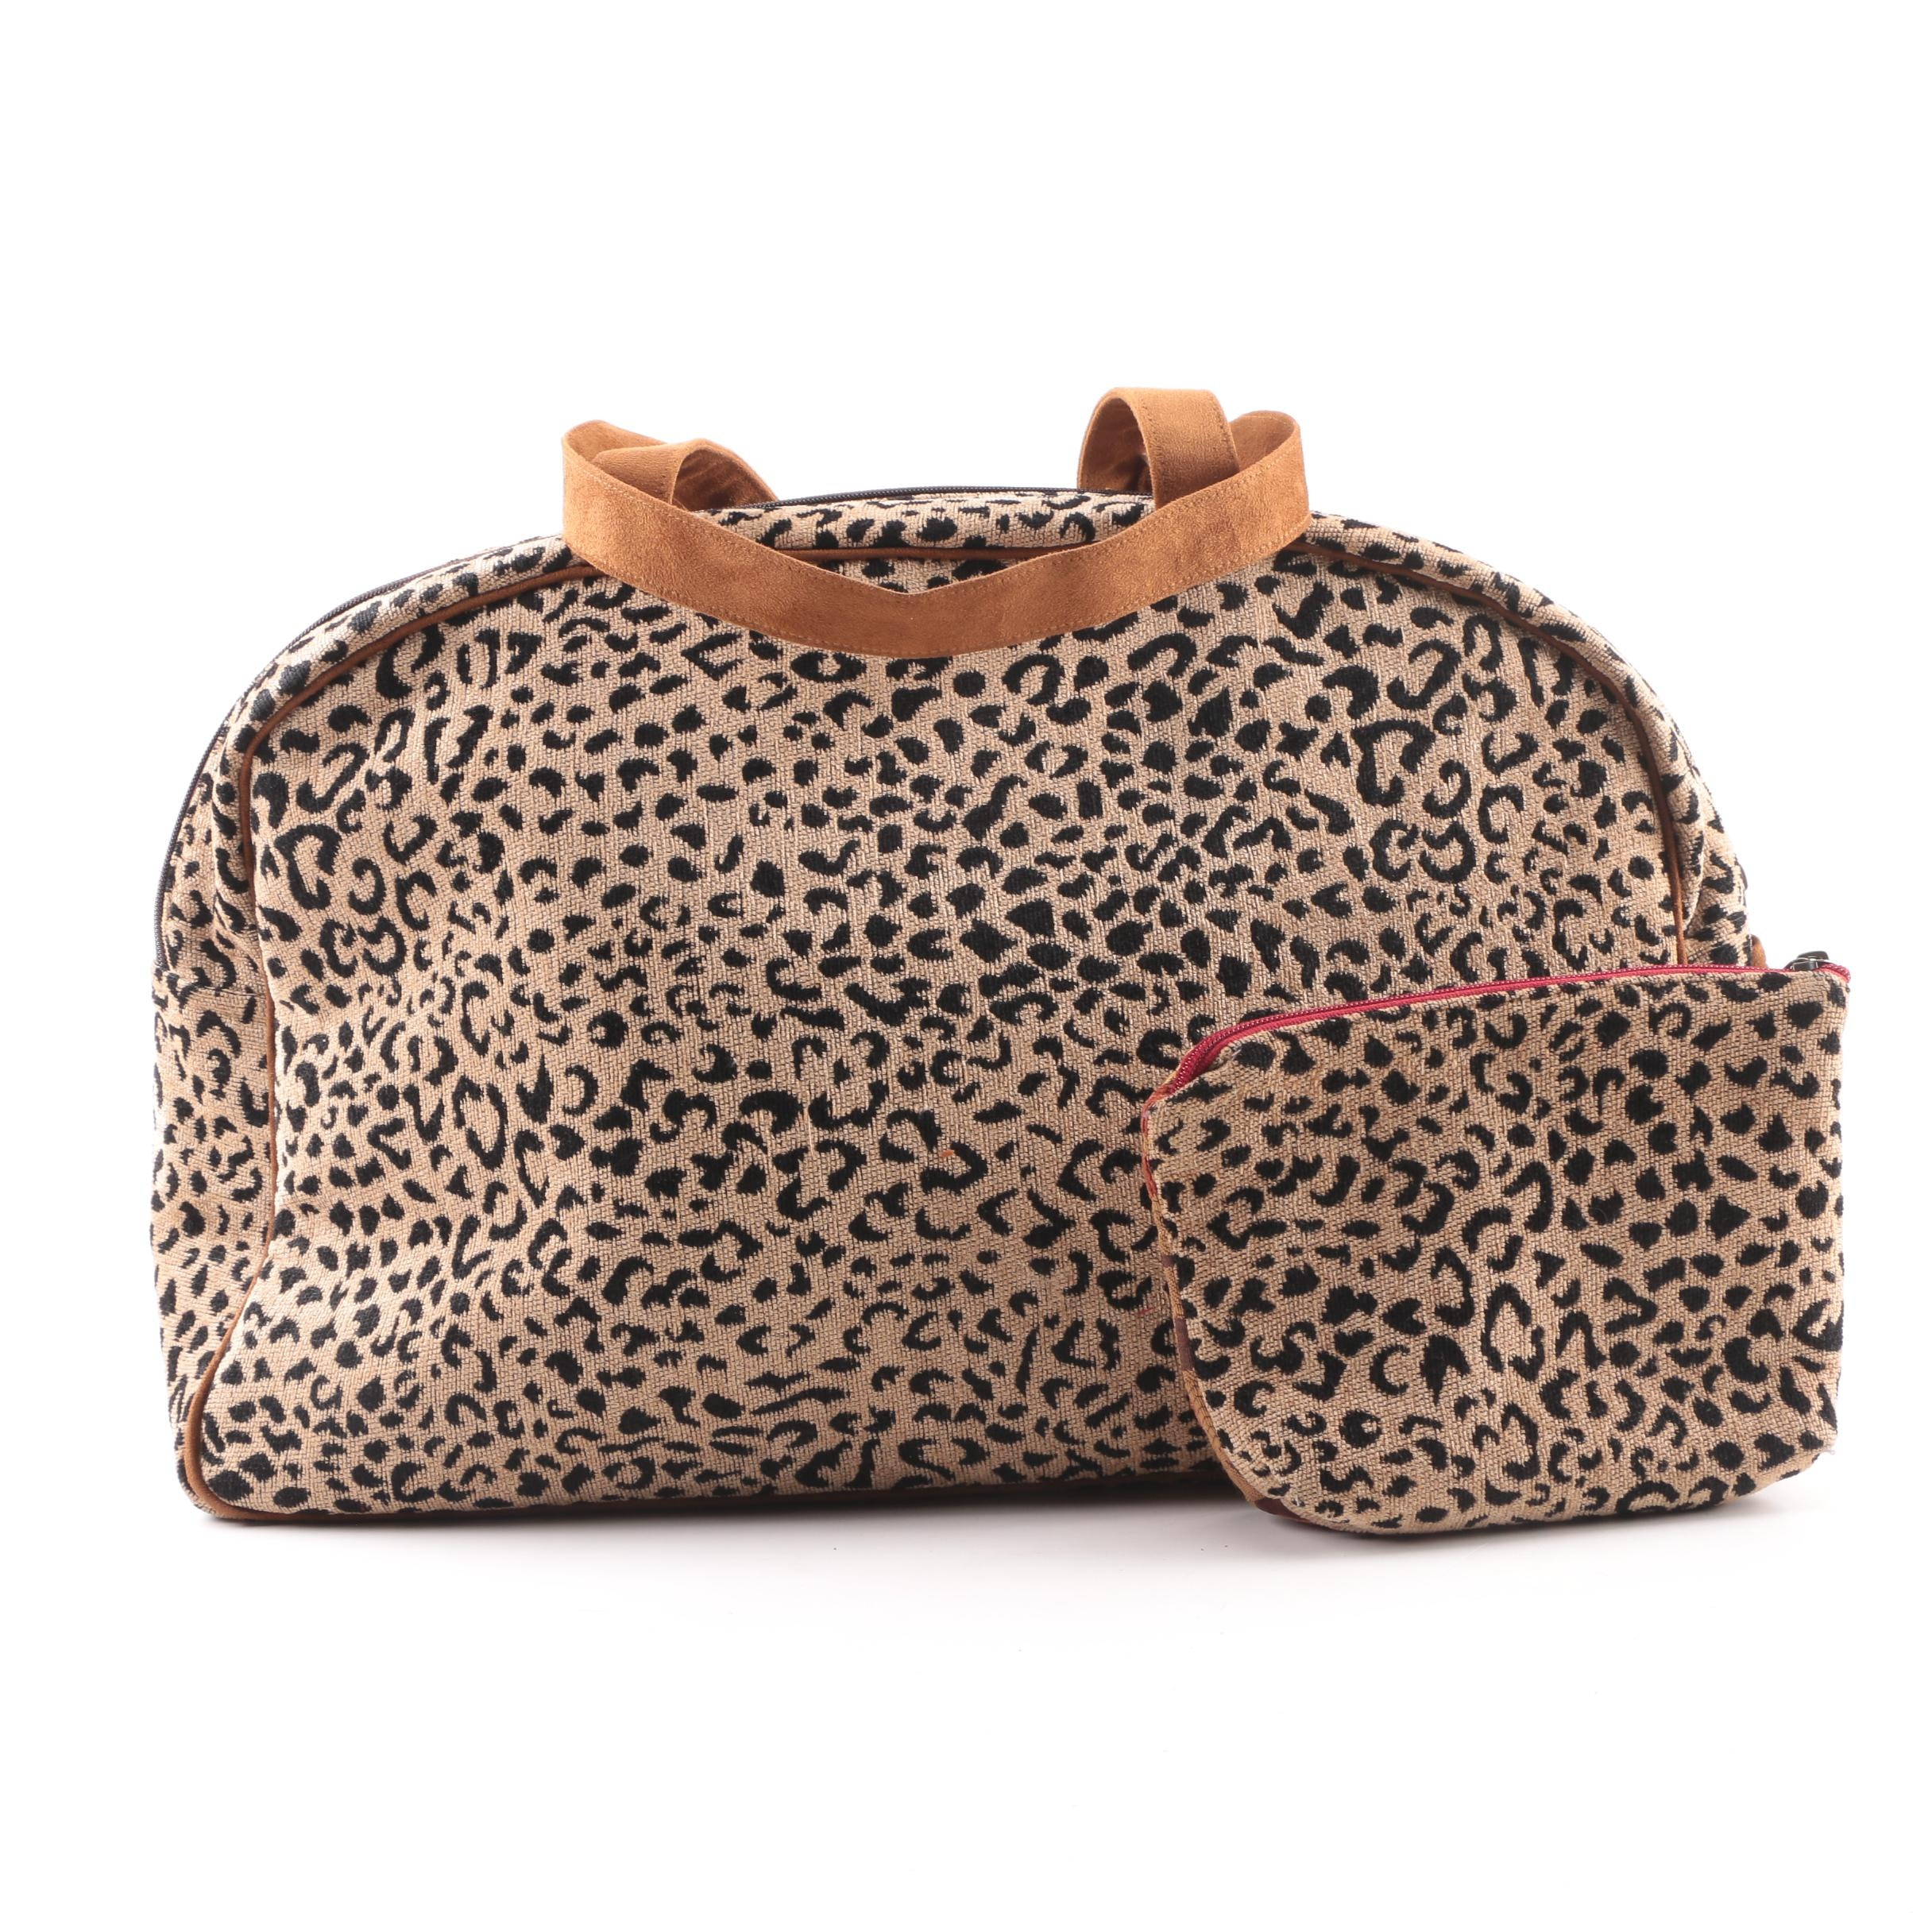 Atenti Beige and Black Leopard Print Weekender Bag with Matching Pouch